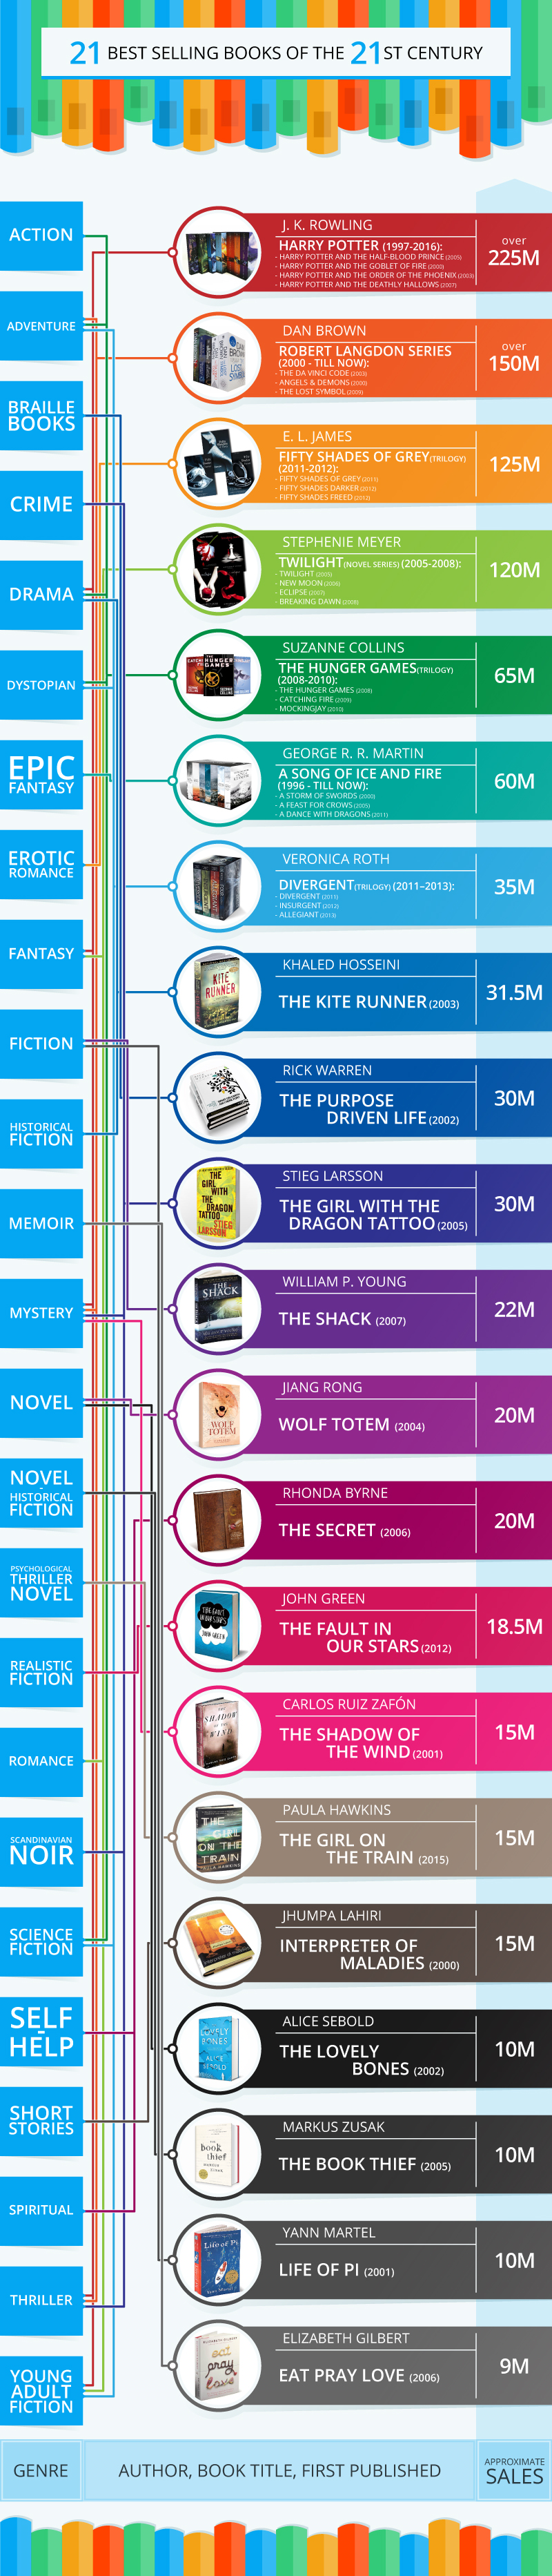 21 Best Selling Books of the 21st Century